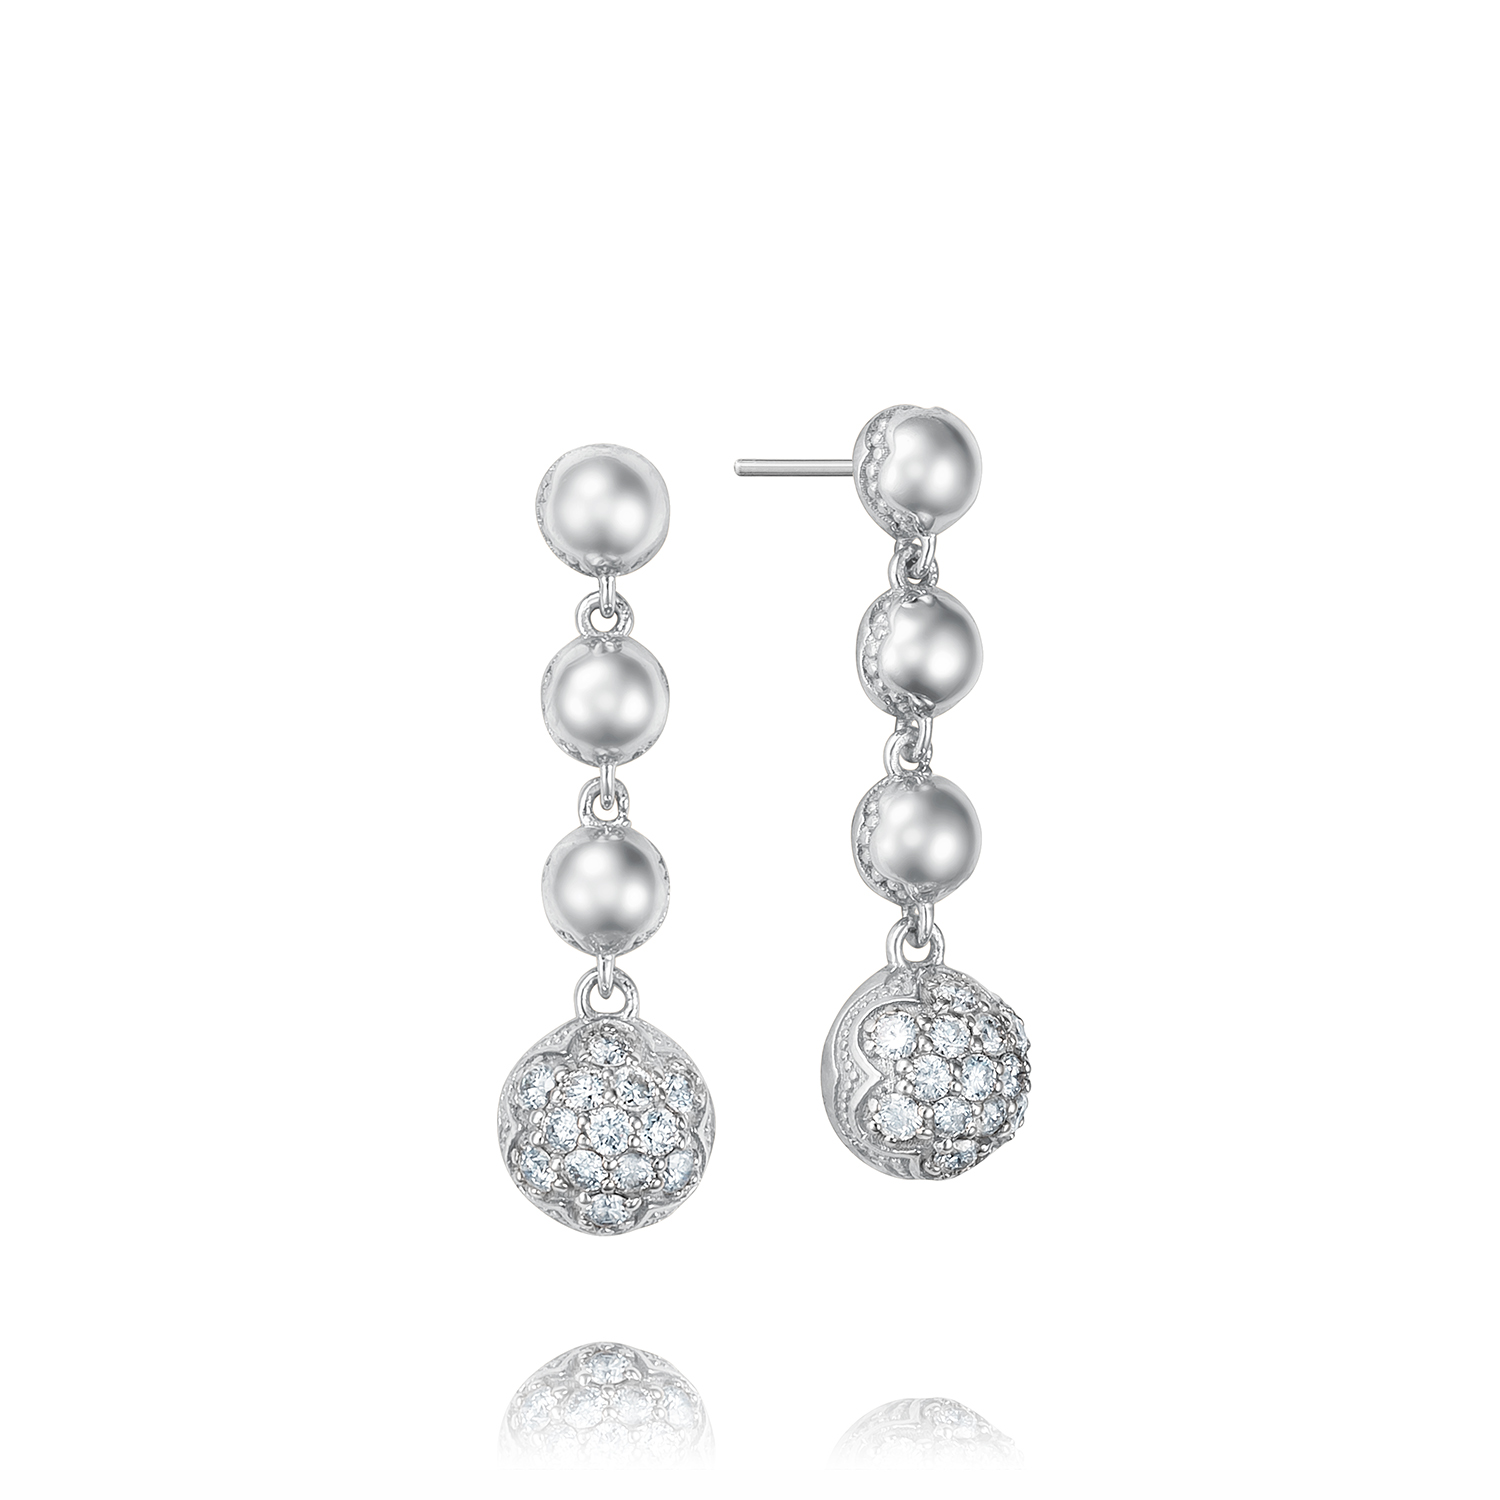 Tacori: Sterling Silver Earrings With 0.40Tw Round Diamonds Style Name: Sonoma Mist Cascading Drops Earrings